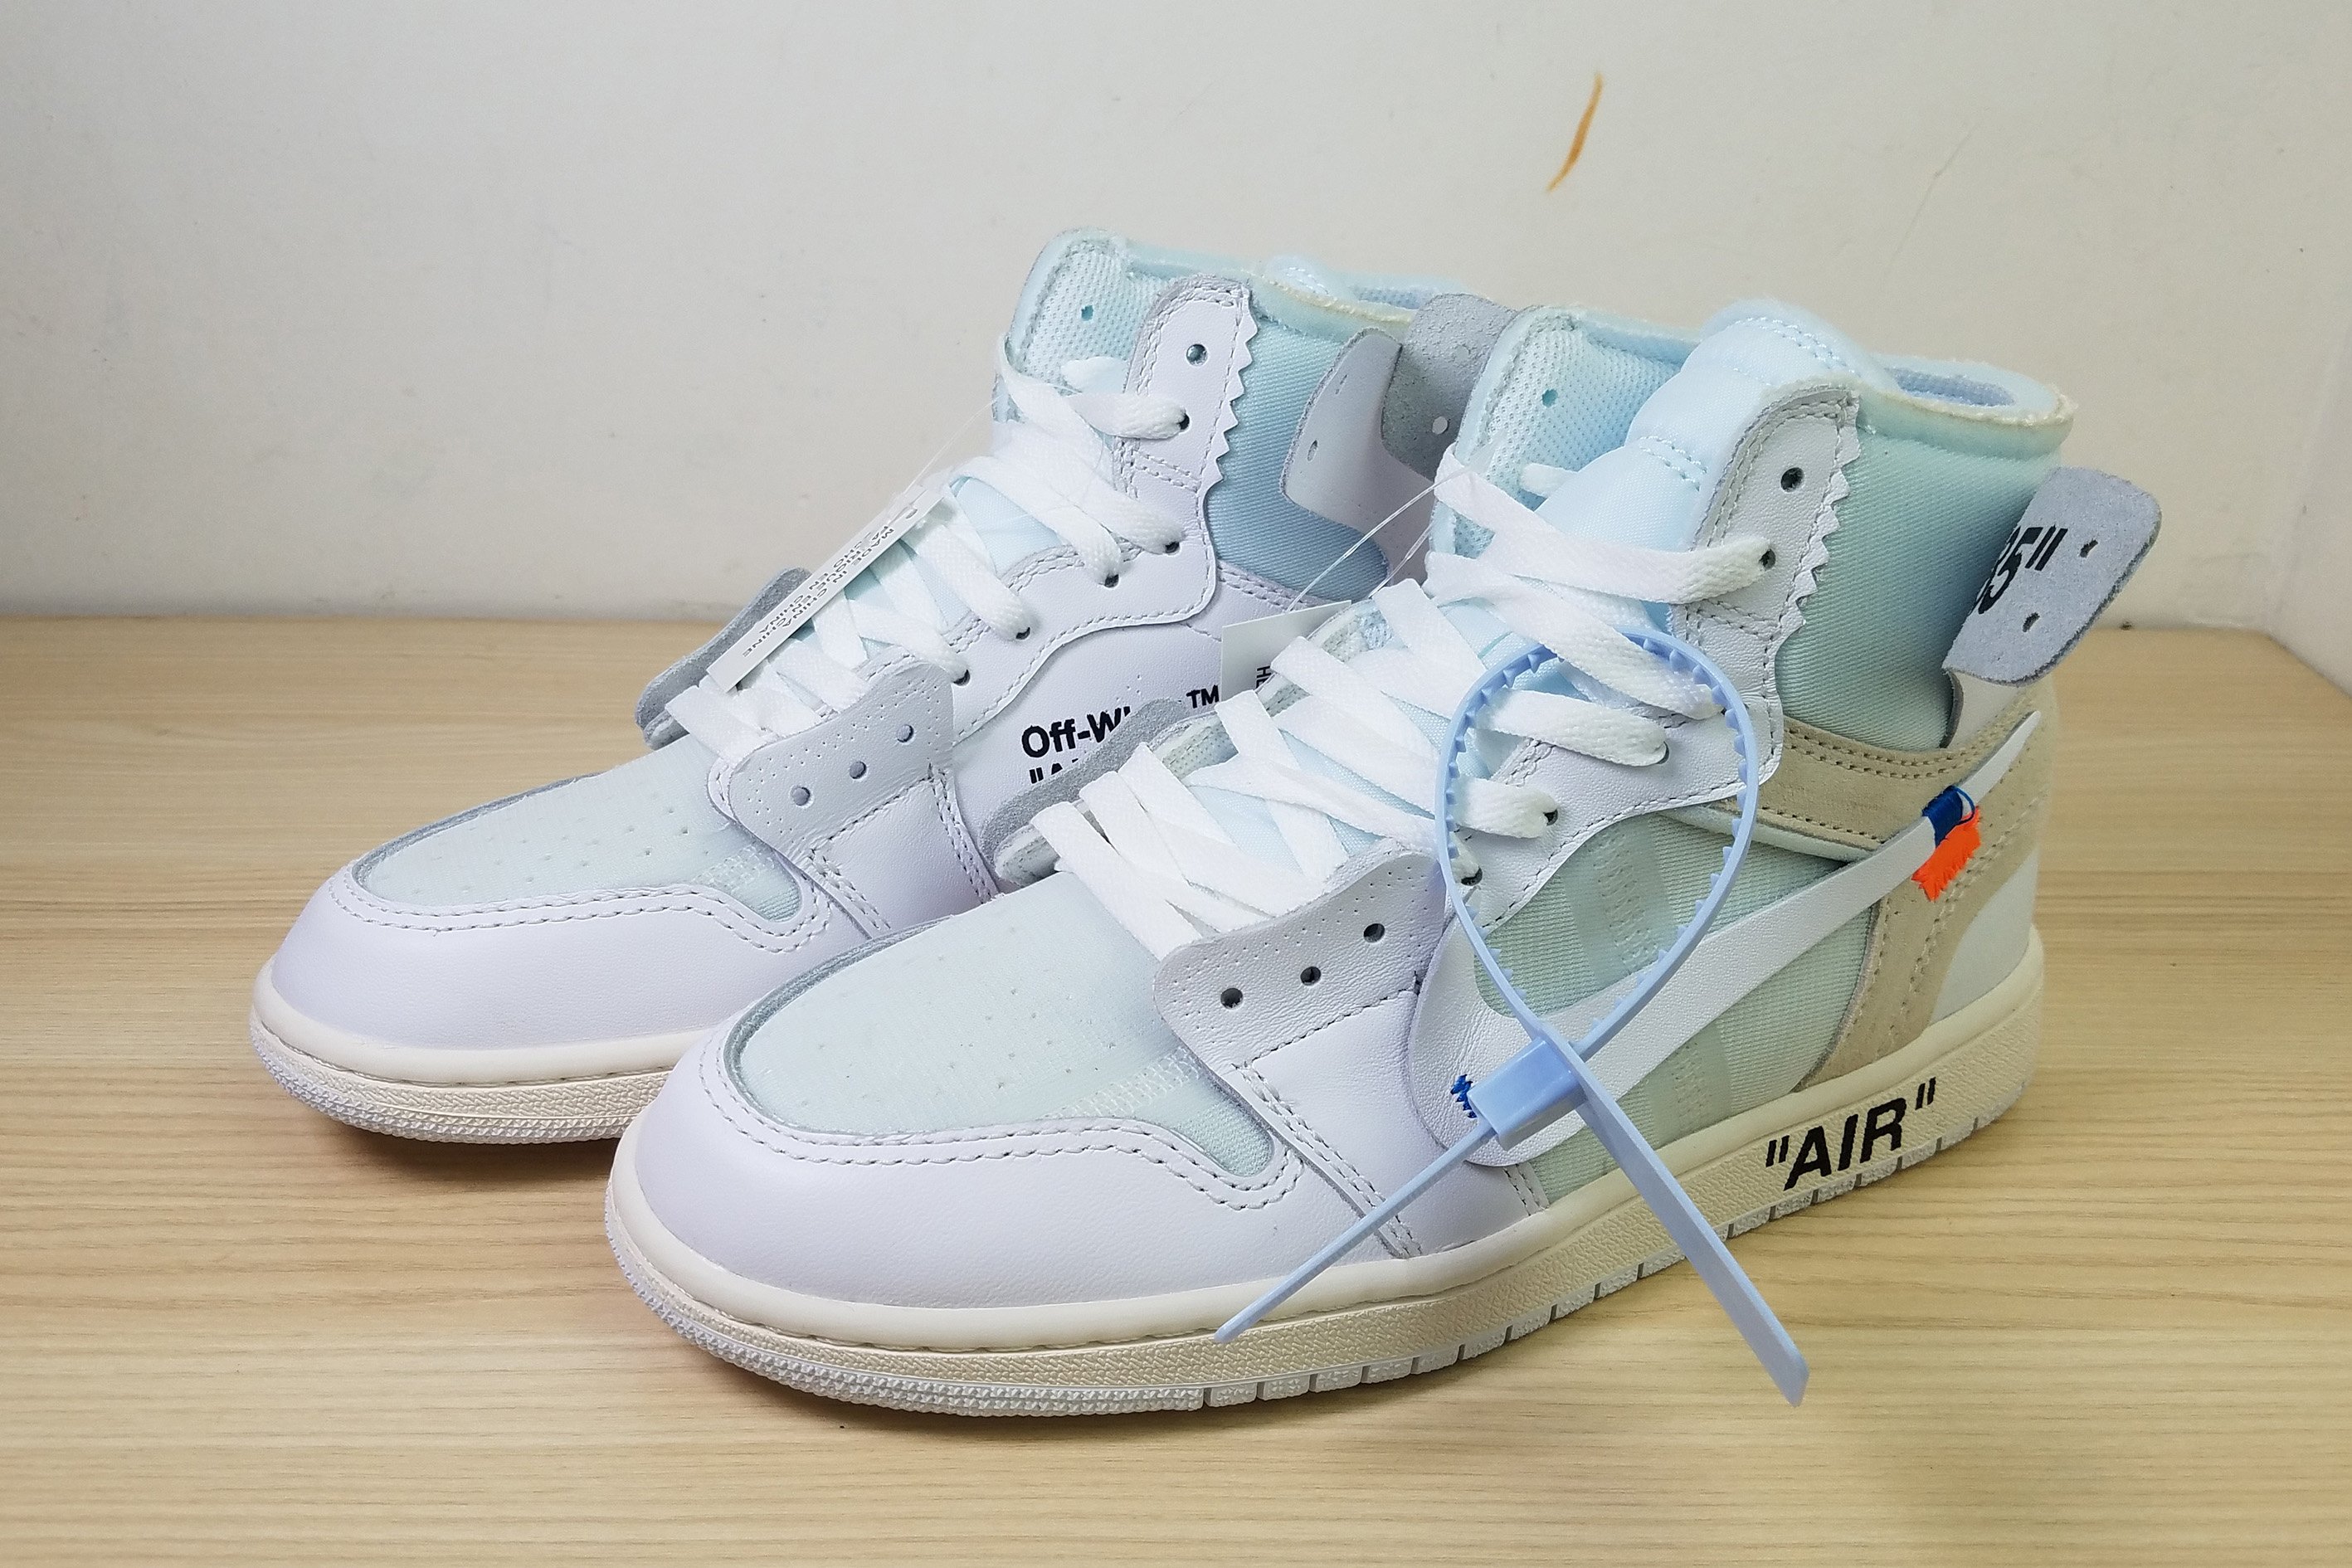 Off-white Air Jordan 1 White Light Blue Shoes